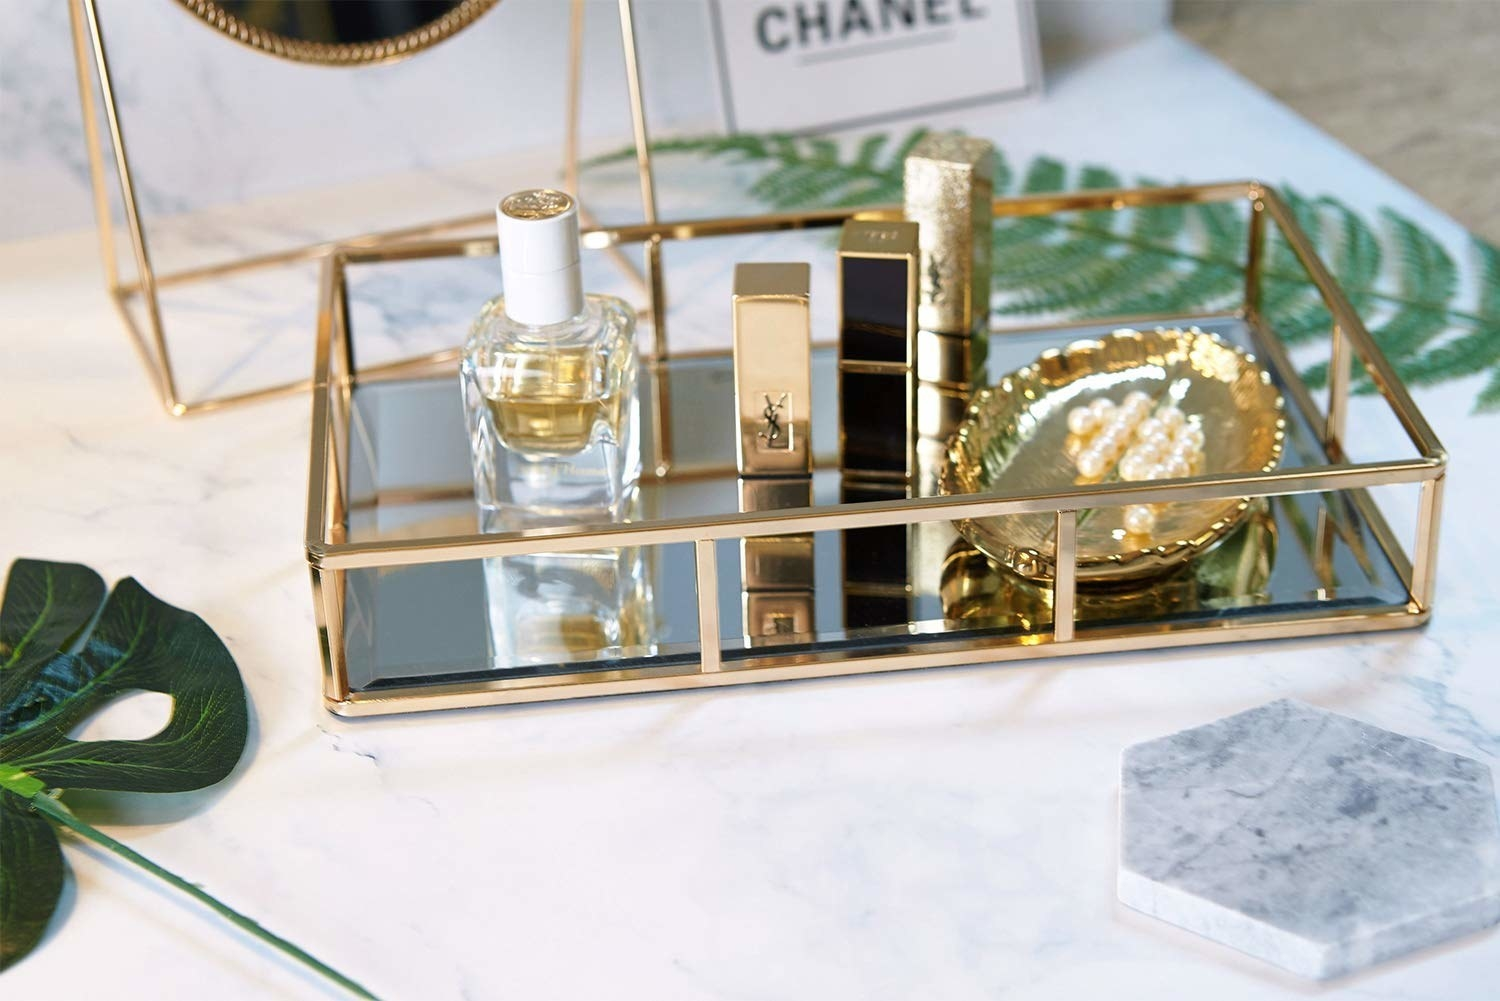 the gold tray with a mirror bottom filled with makeup, nail polish, and jewelry